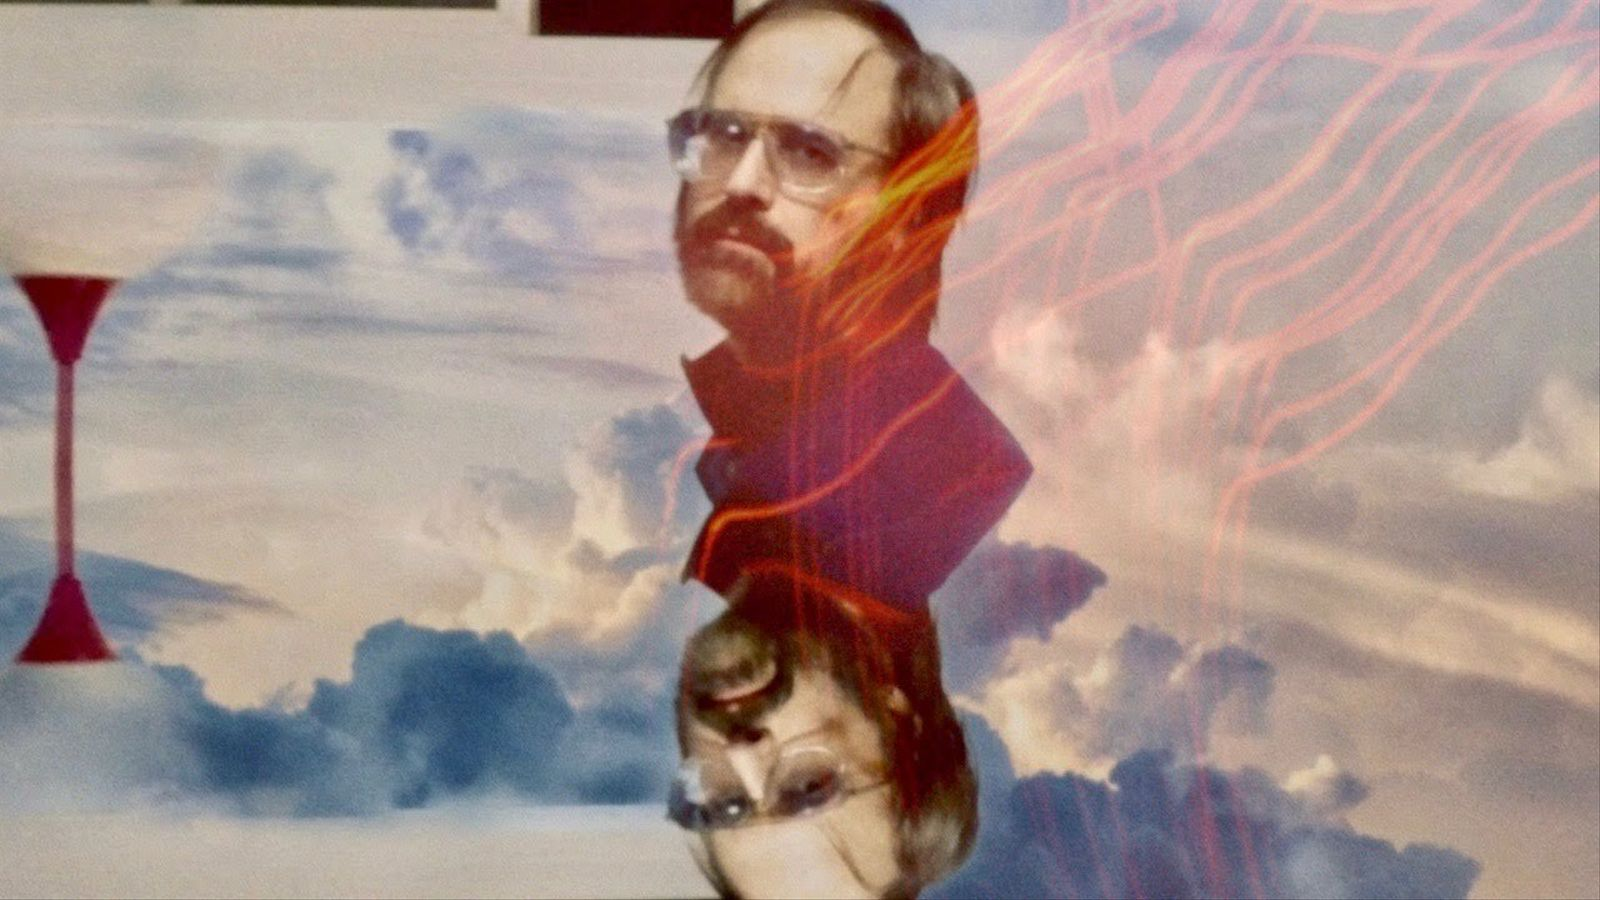 'All my happiness is gone', de Purple Mountains, l'últim projecte musical de David Berman